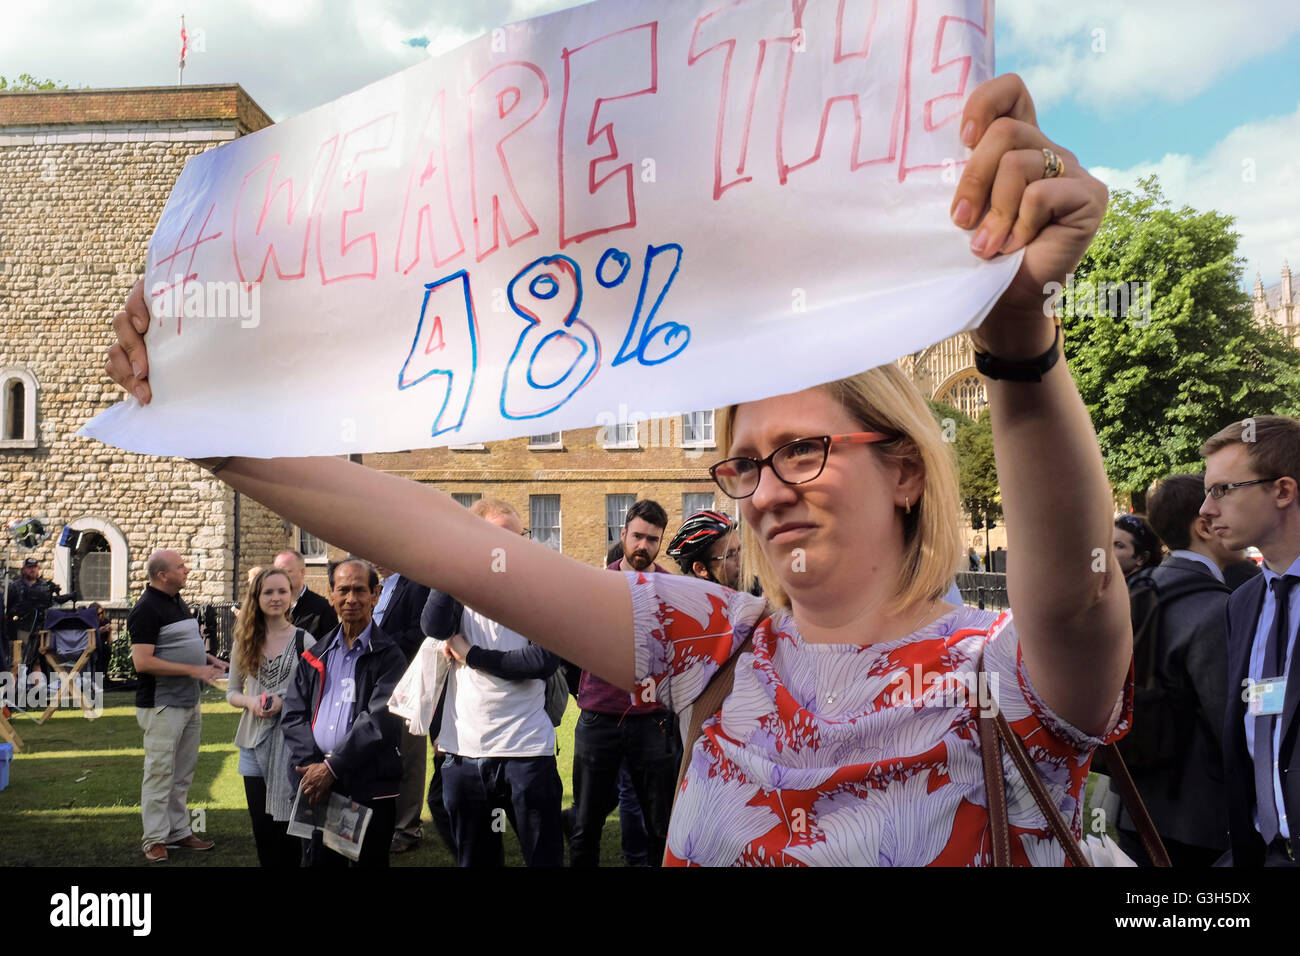 London, UK. 24 June 2016. Pro Remain supporter holds sign showing percentage of electorate which voted to remain - Stock Image